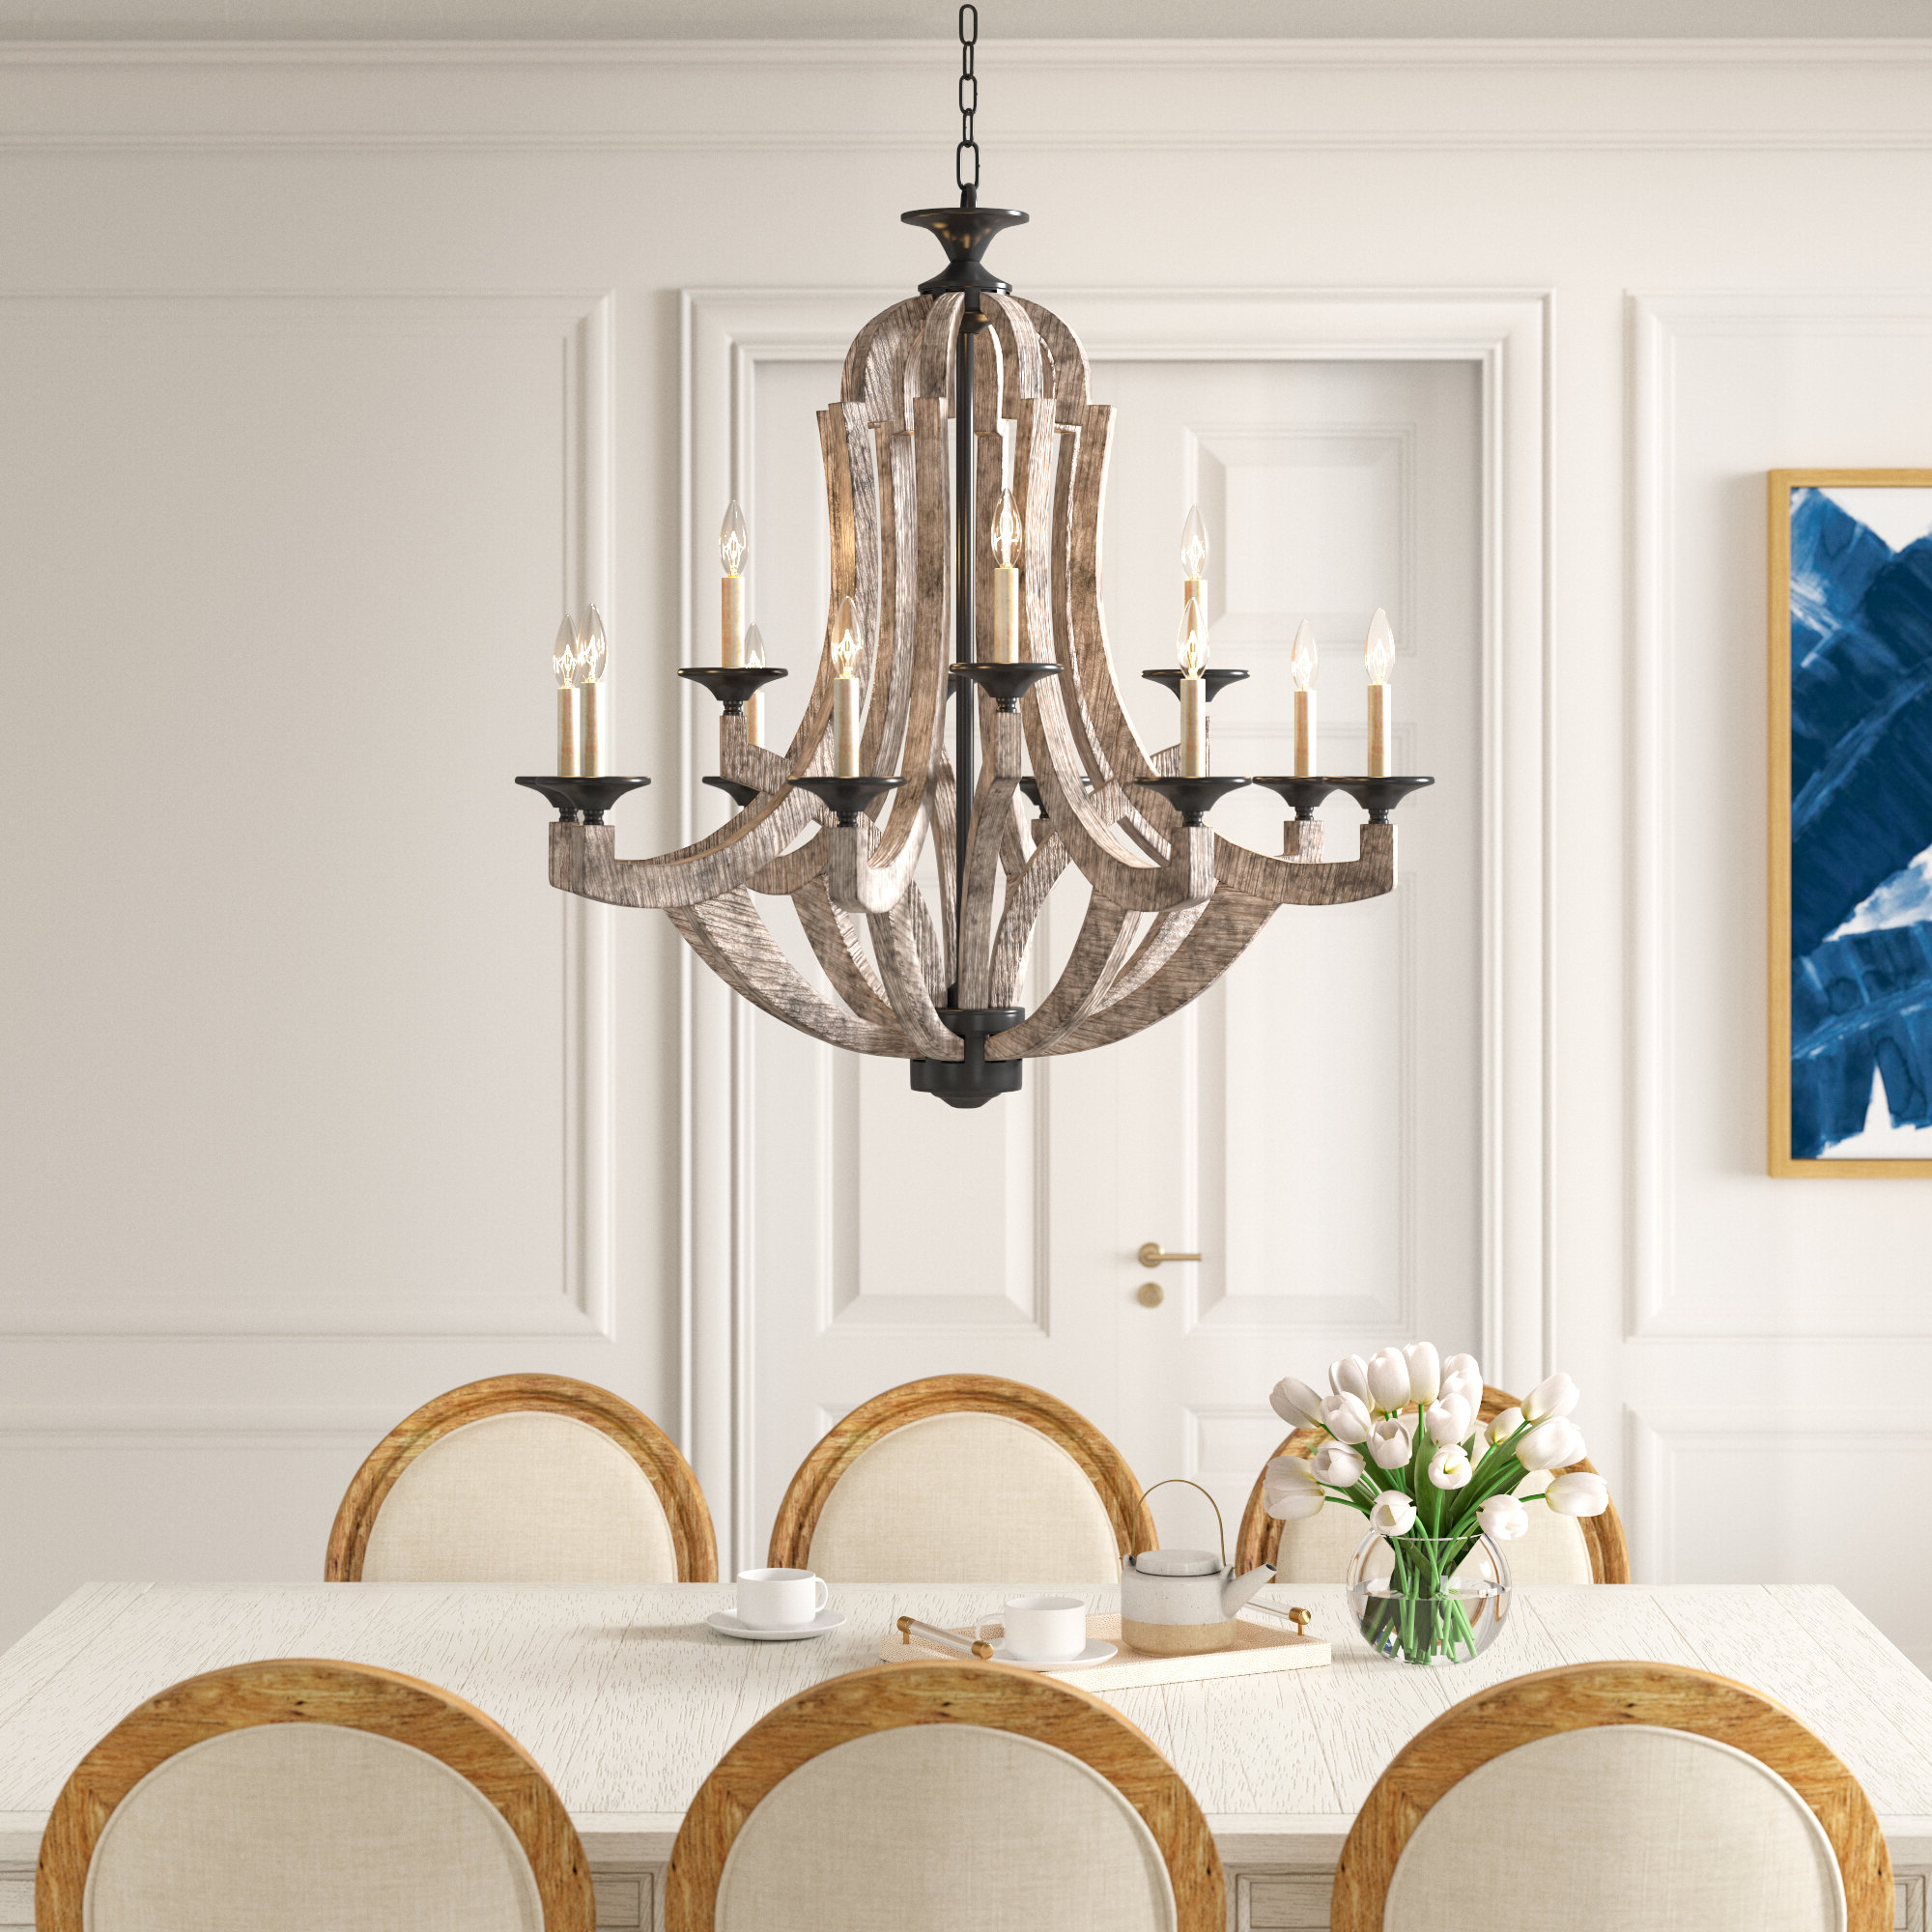 Most Recently Released Shayla 12 Light Wagon Wheel Chandeliers Intended For 11+ Chandeliers (View 23 of 25)